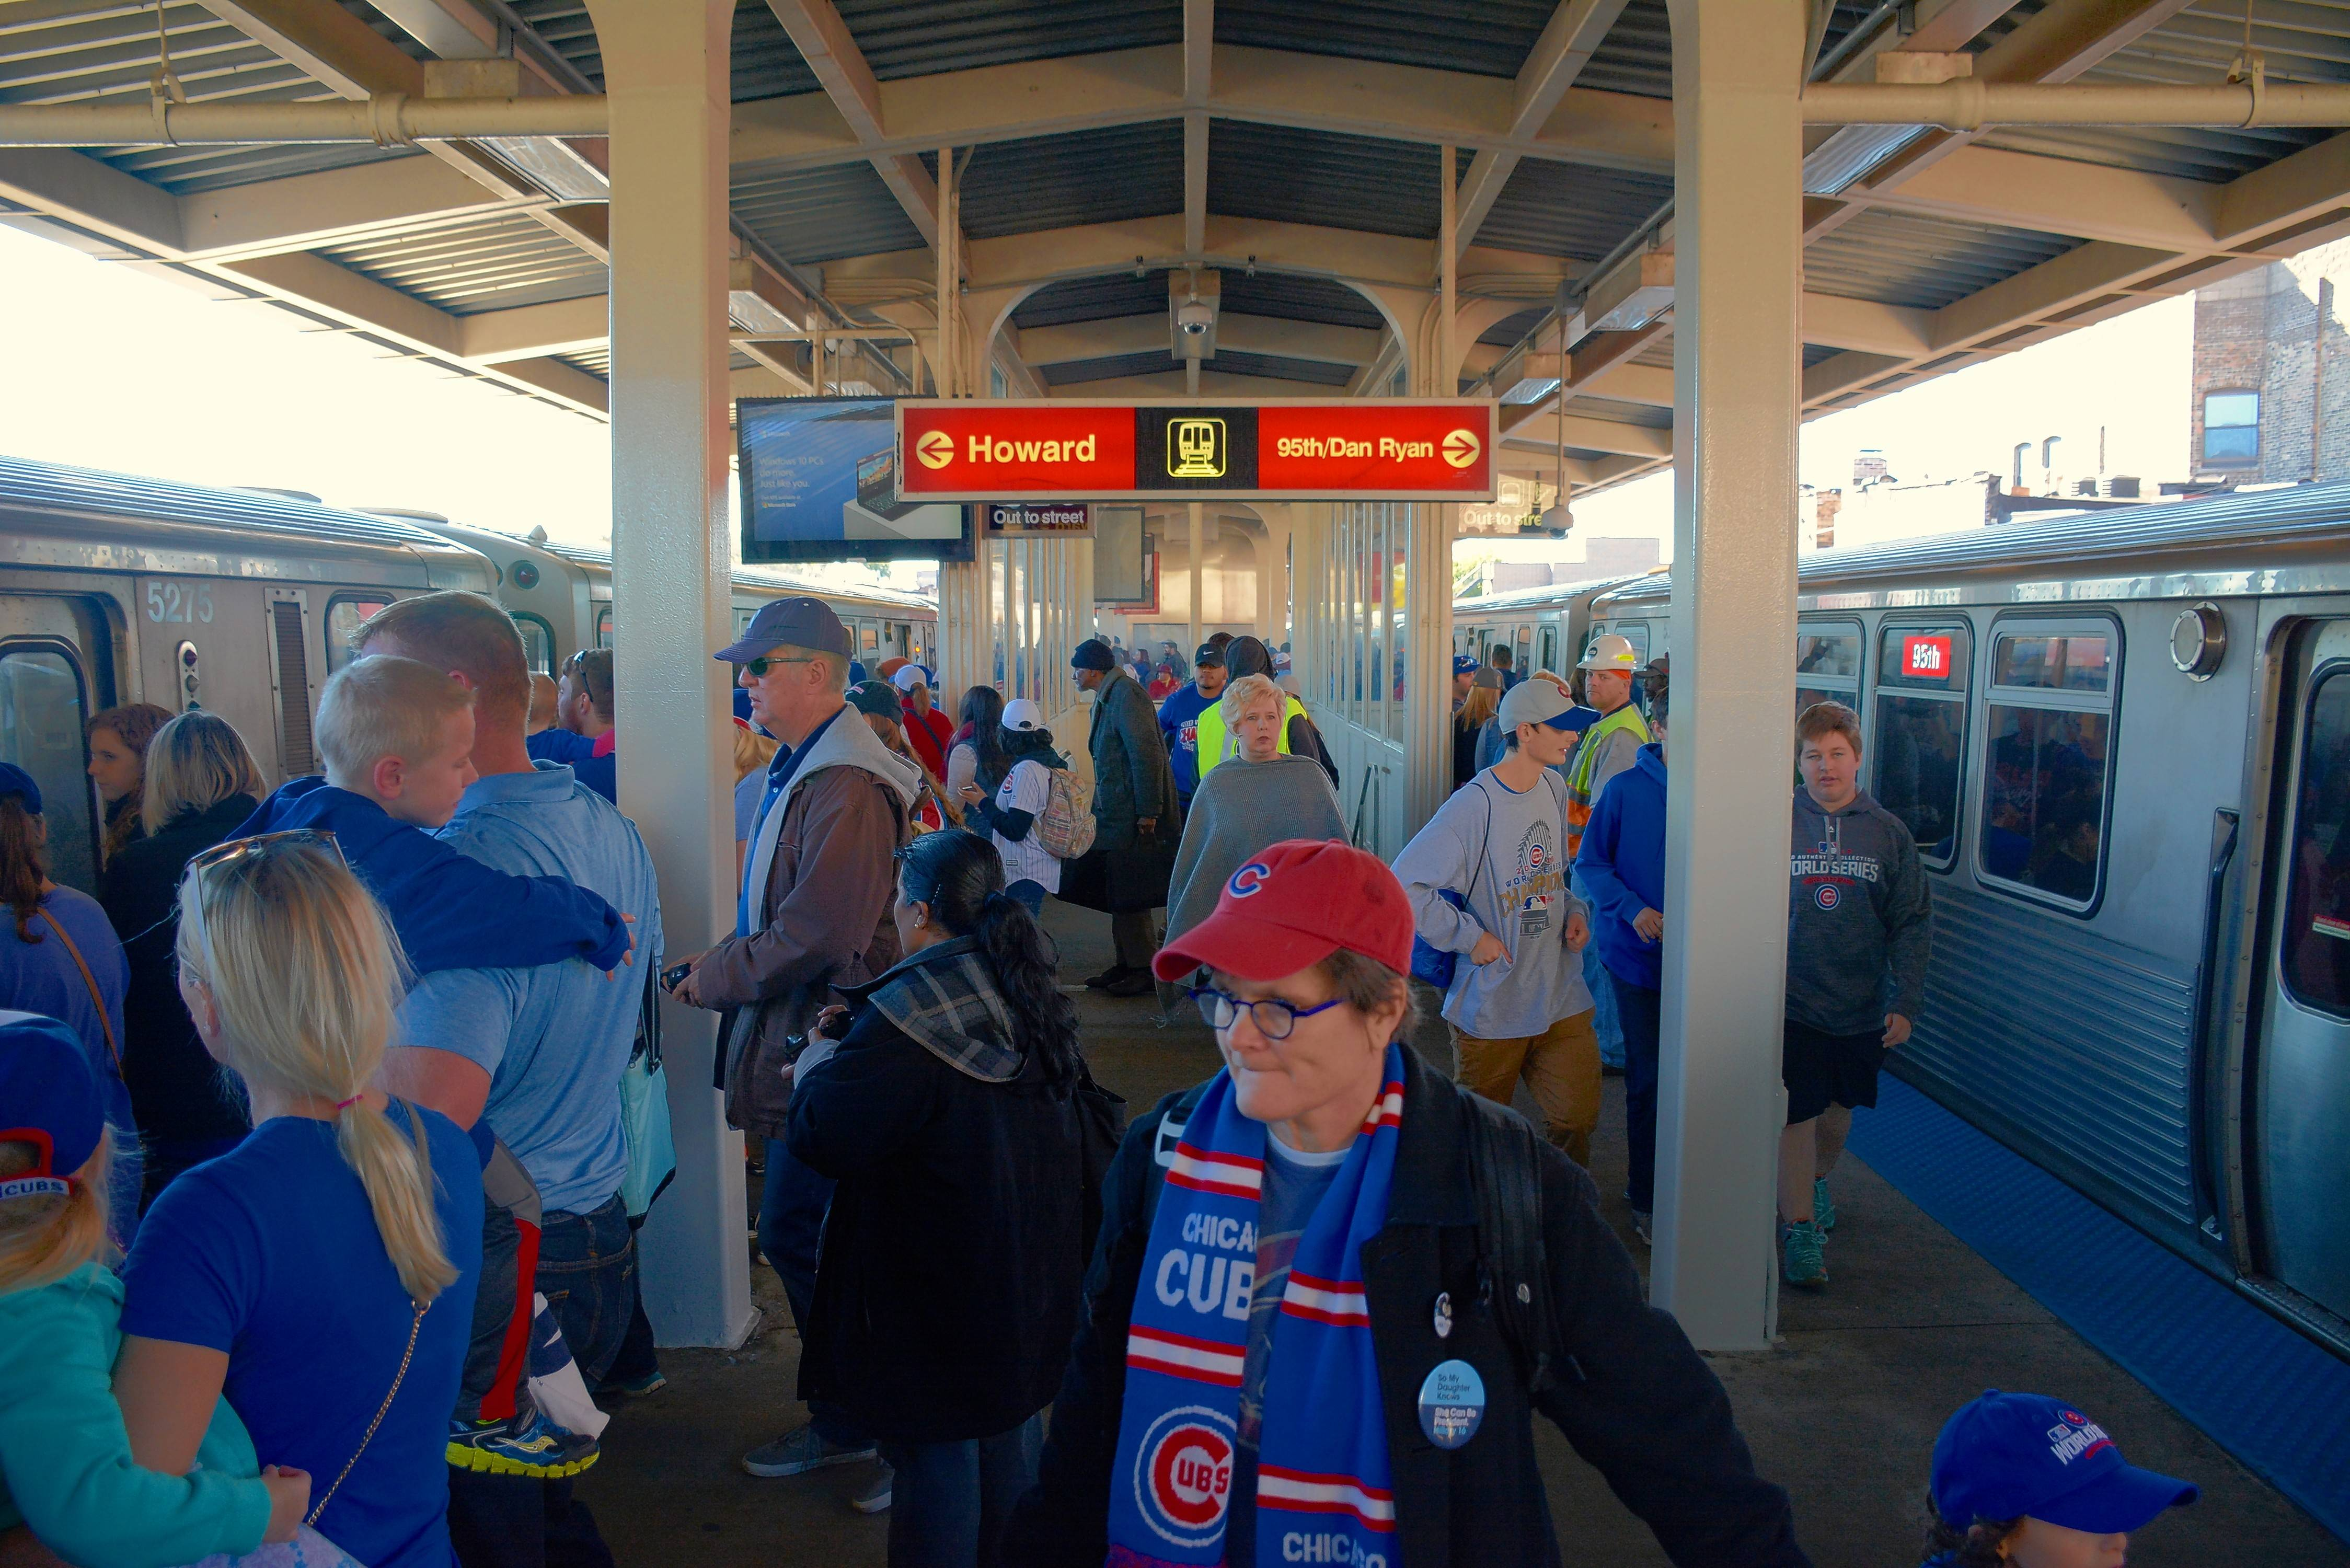 An insider's guide to getting to Wrigley Field for the NLDS